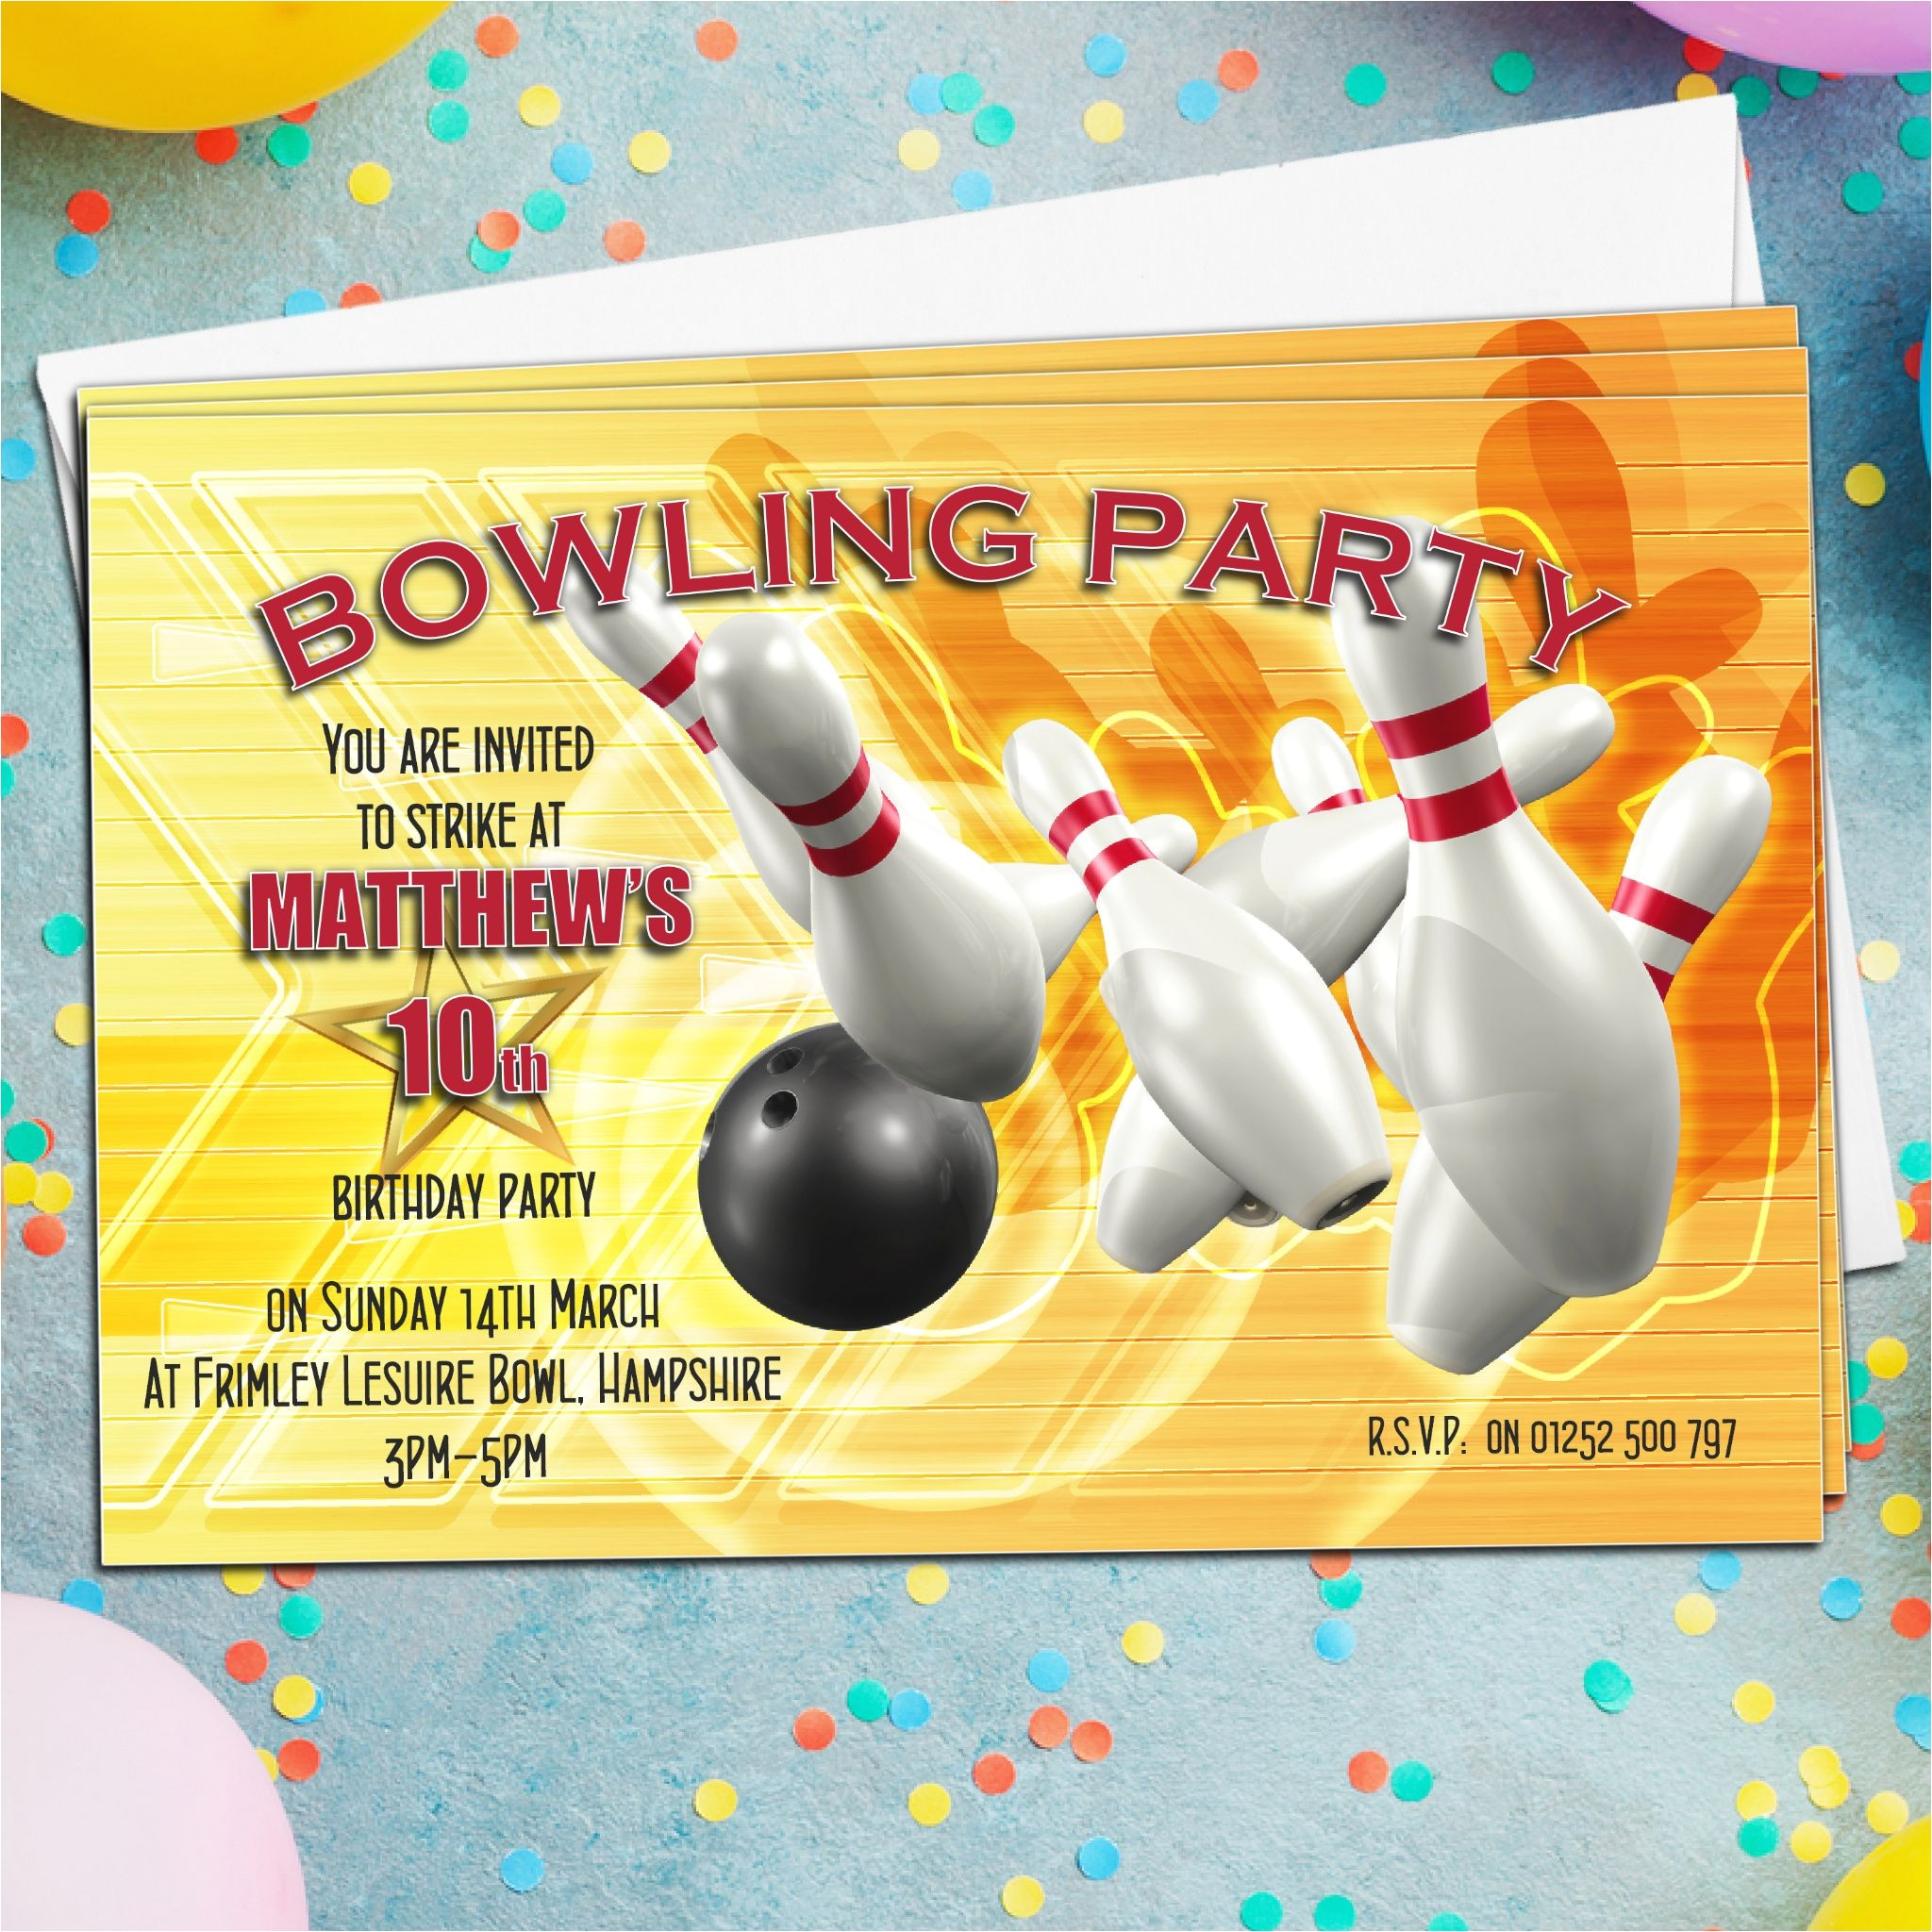 10 personalised tenpin bowling birthday party invitations n1 843 p